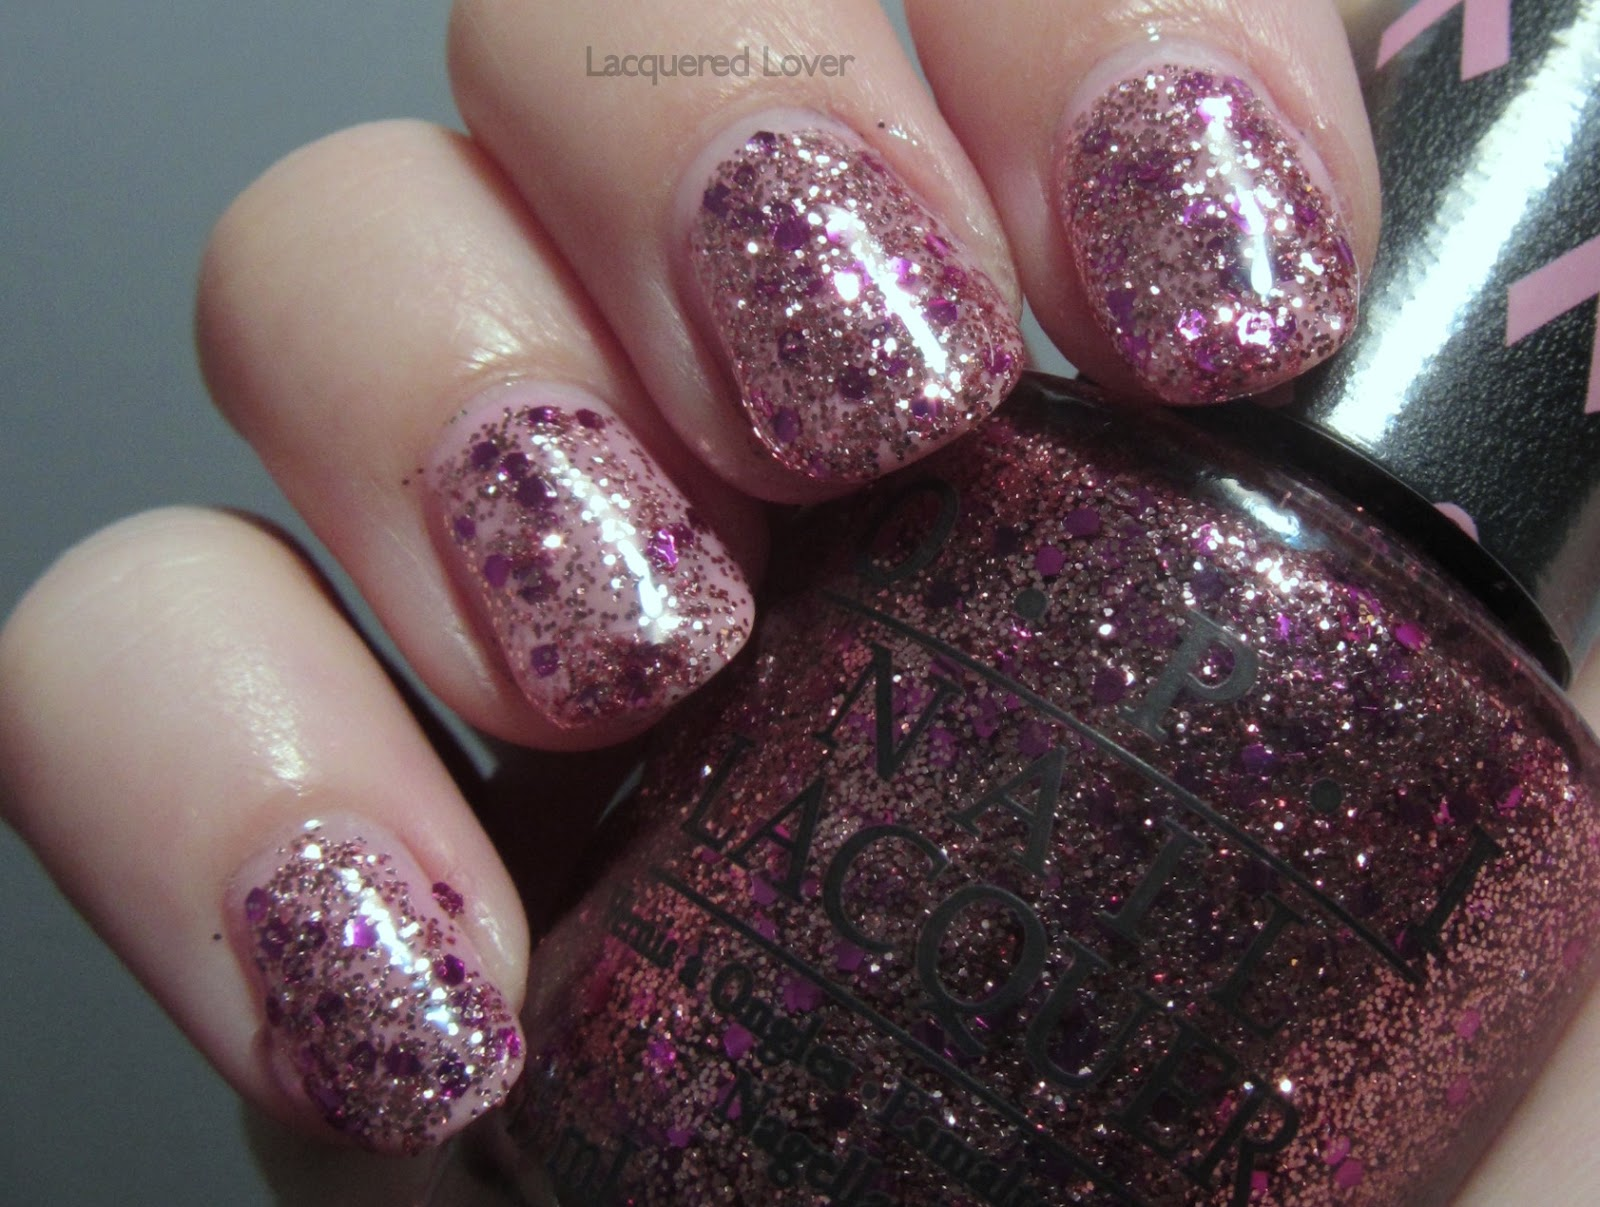 OPI Pink of Hearts 2012 Swatches and Review Opi Pink Of Hearts 2012